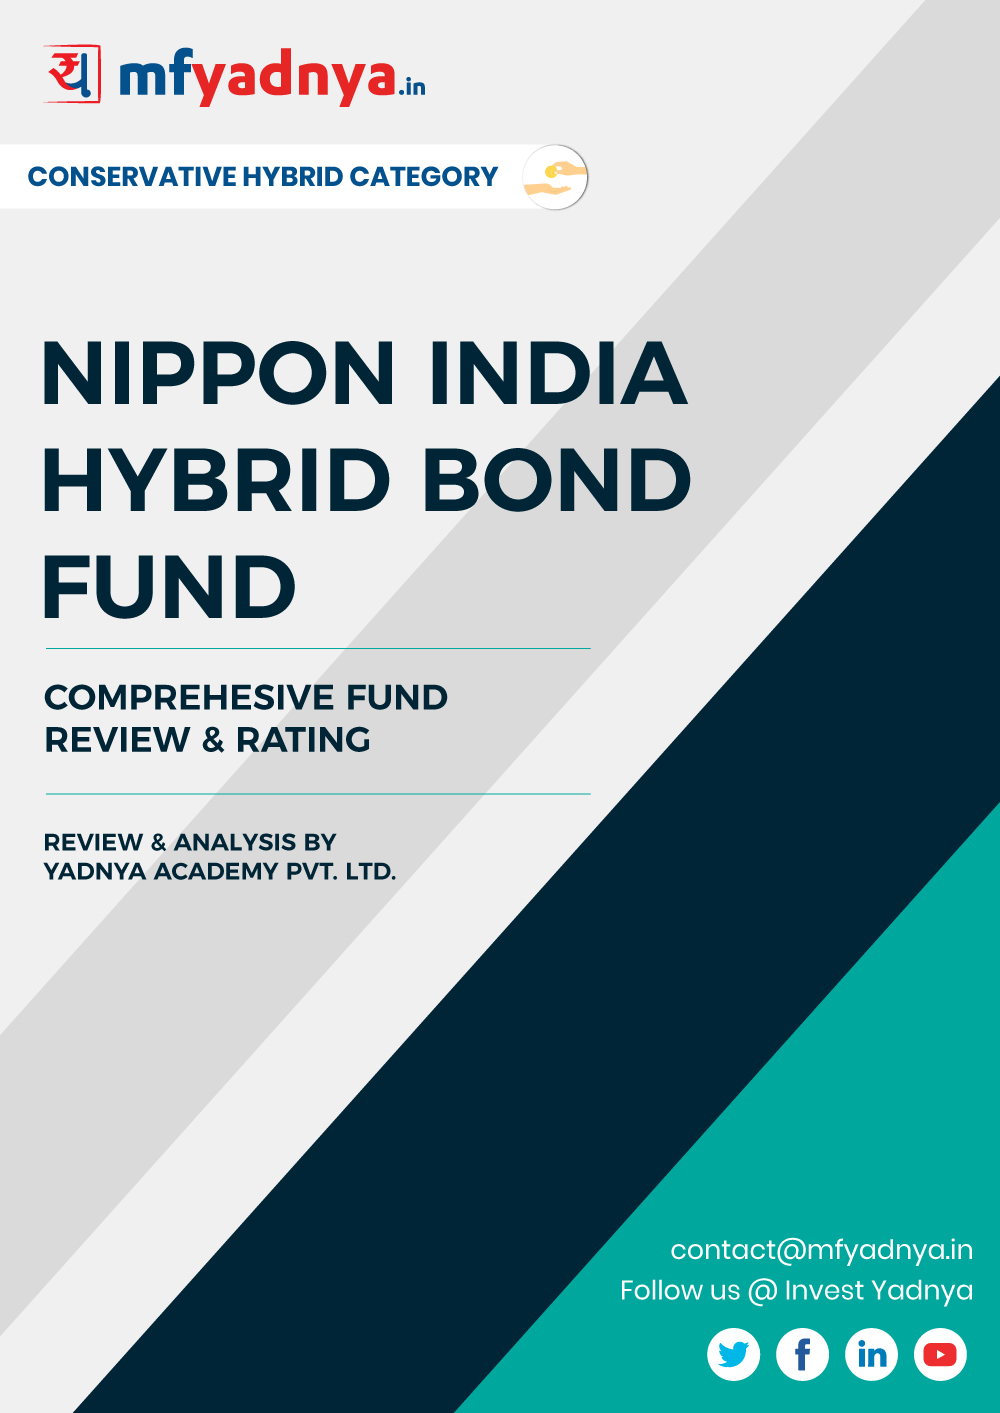 This e-book offers a comprehensive mutual fund review of NIPPON India Hybrid Bond Fund. It reviews the fund's return, ratio, allocation etc. ✔ Detailed Mutual Fund Analysis ✔ Latest Research Reports